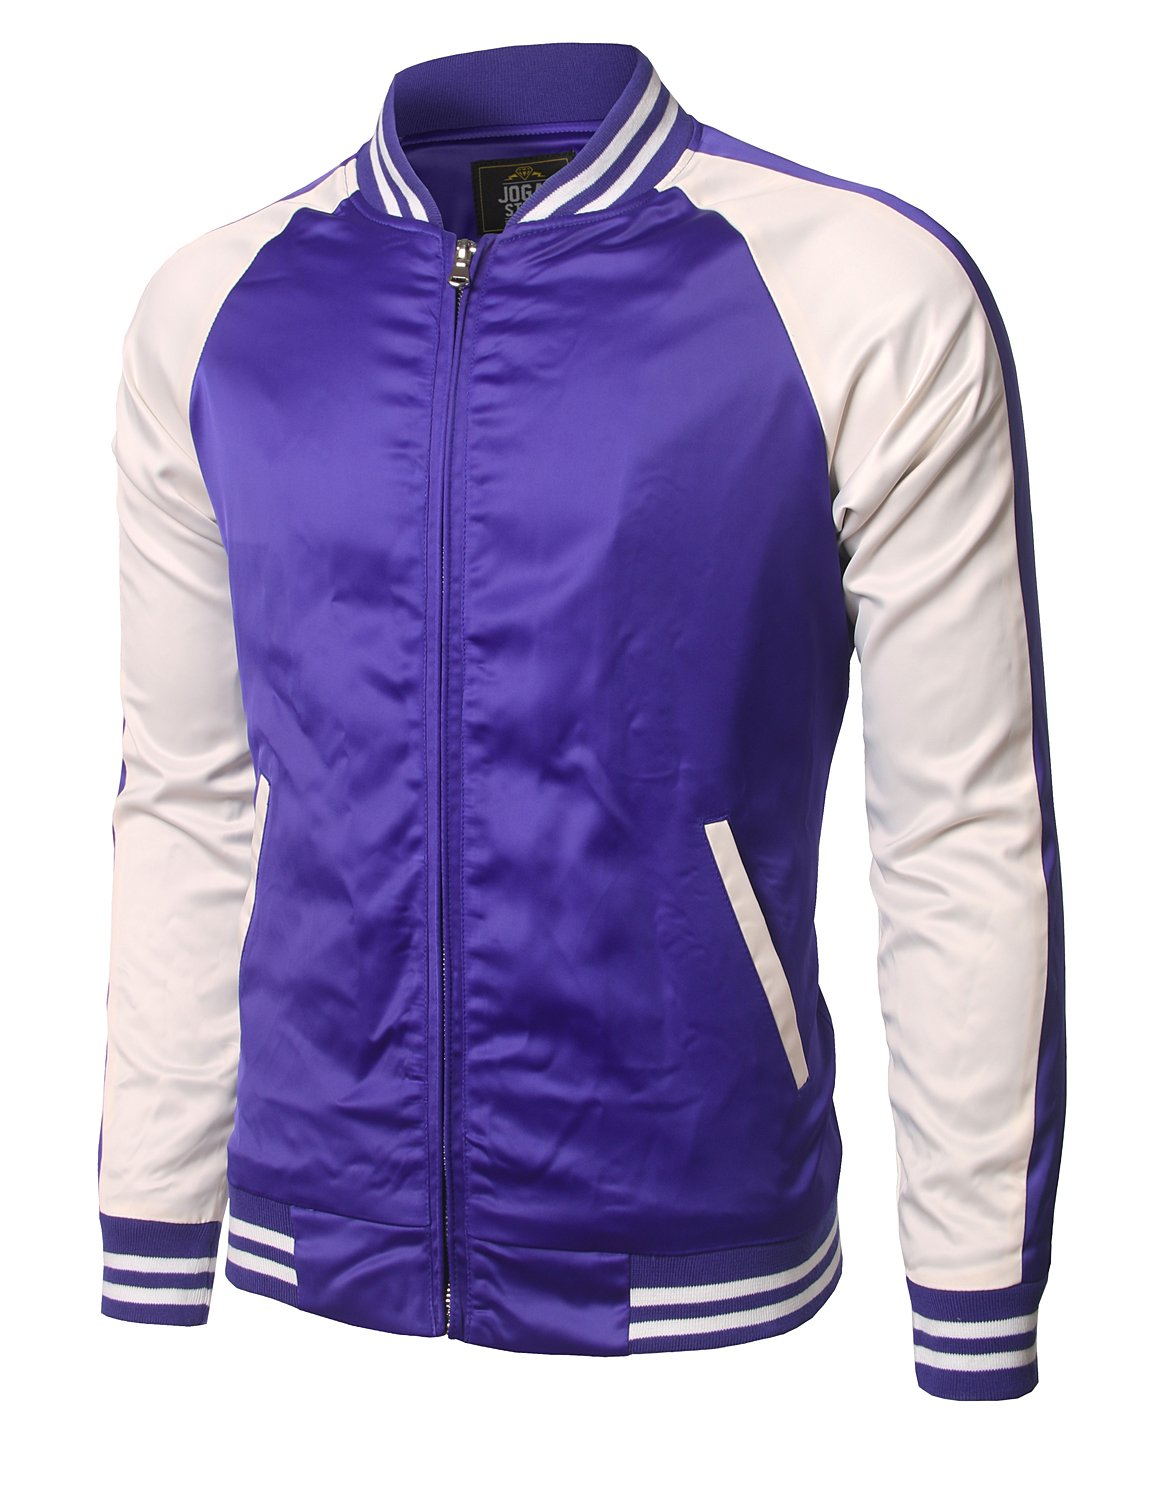 JOGAL Mens Zip up Stain Contrast Colors Varsity Baseball Bomber Jacket X-Large Blue by JOGAL